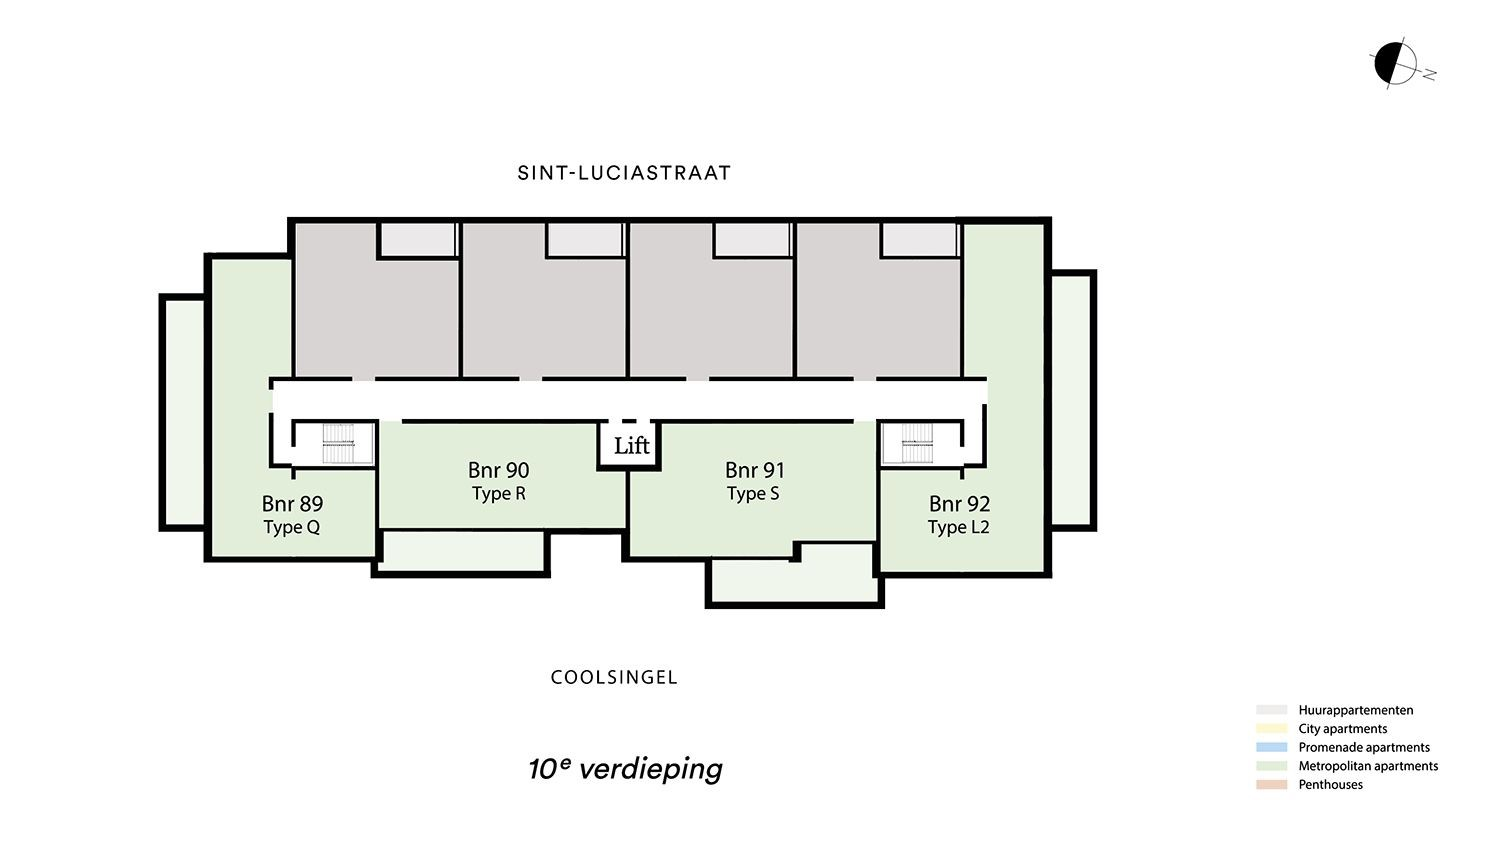 Floor plan verdieping 10 Type L2 - Metropolitan apartment N� 75 coolsingel